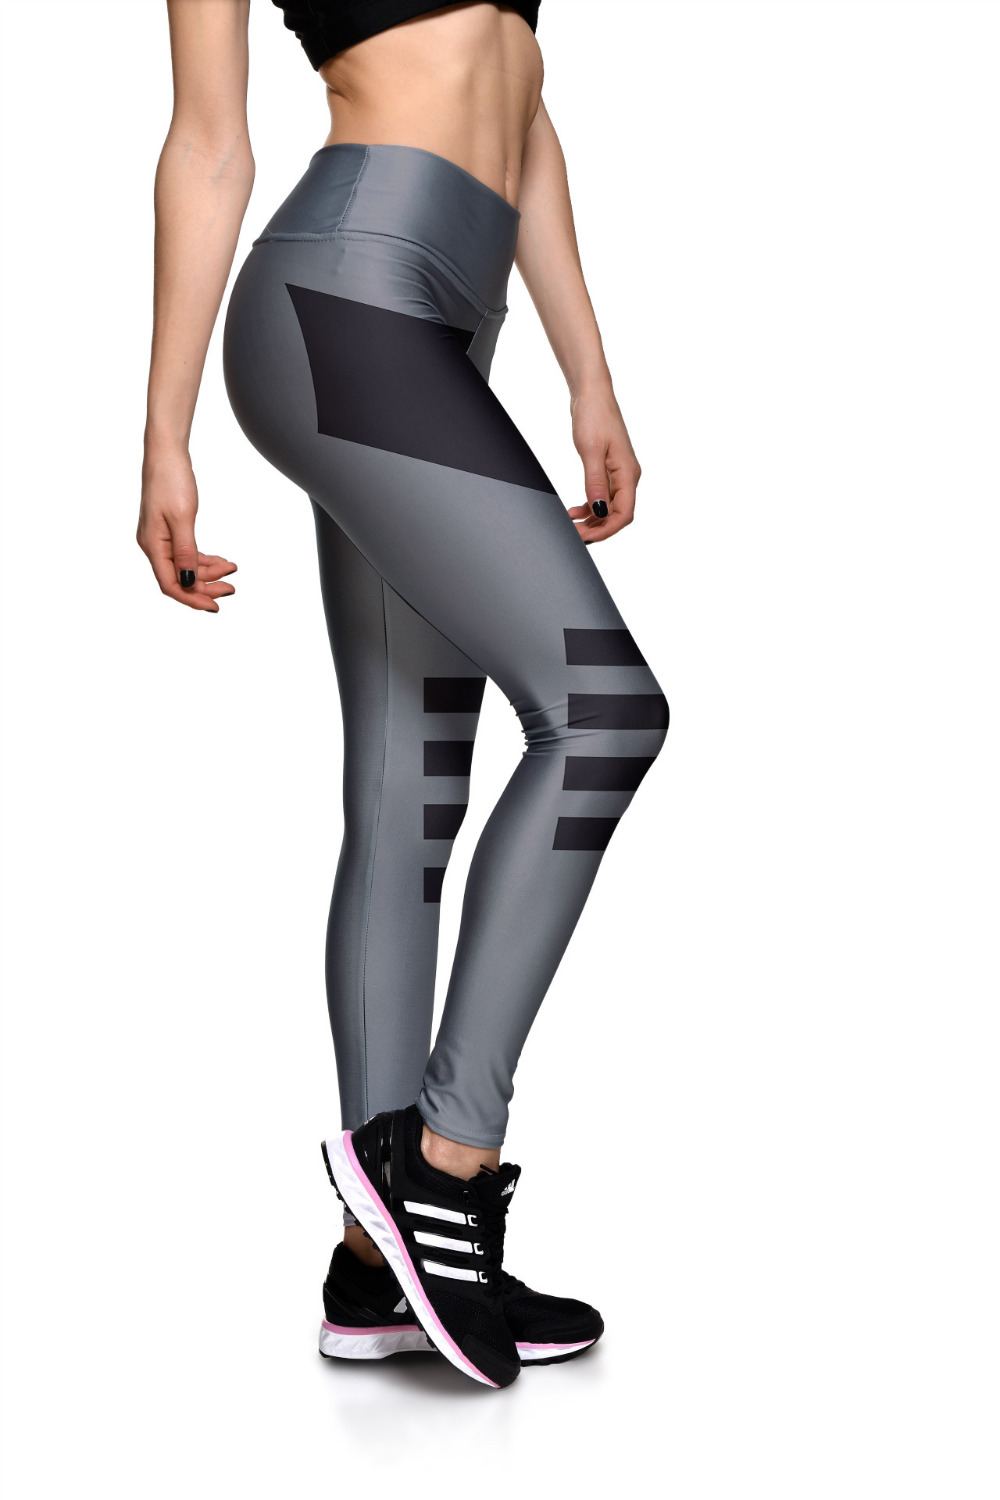 Yoga Sports Brand Sex High Waist Stretched Sports Pants Gym Clothes - Sportswear and Accessories